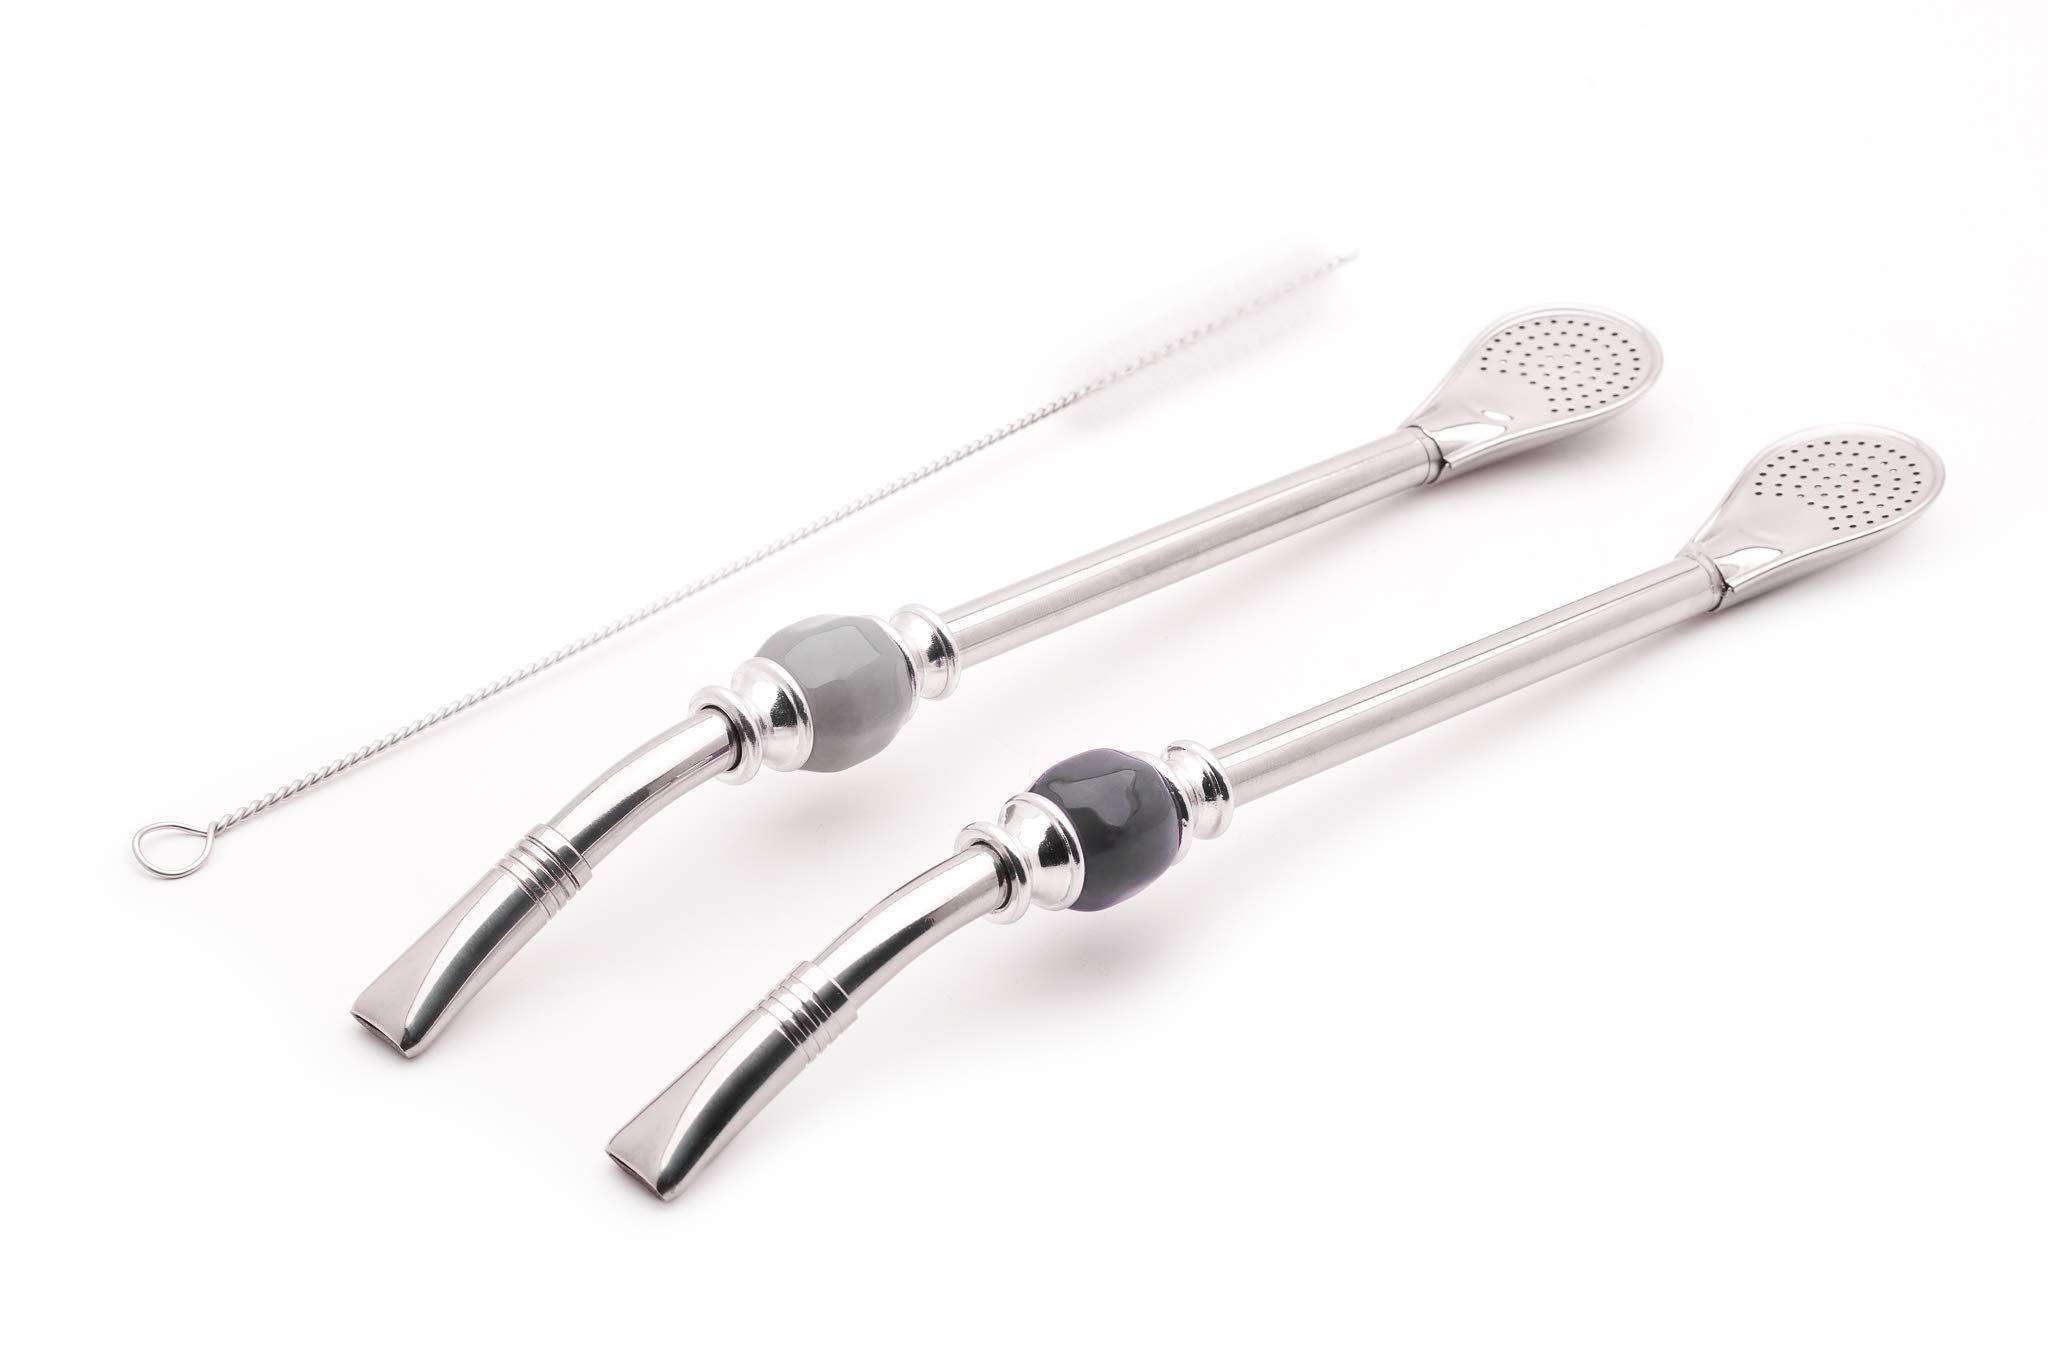 Balibetov [NEW] Set of 2 Premium big Yerba Mate stainless steel straws - Bombillas for mate gourd drinking, with removable head filter - Cleaning Brush Included - 8.5'' long (22 cm) GRAY-BLACK by BALIBETOV